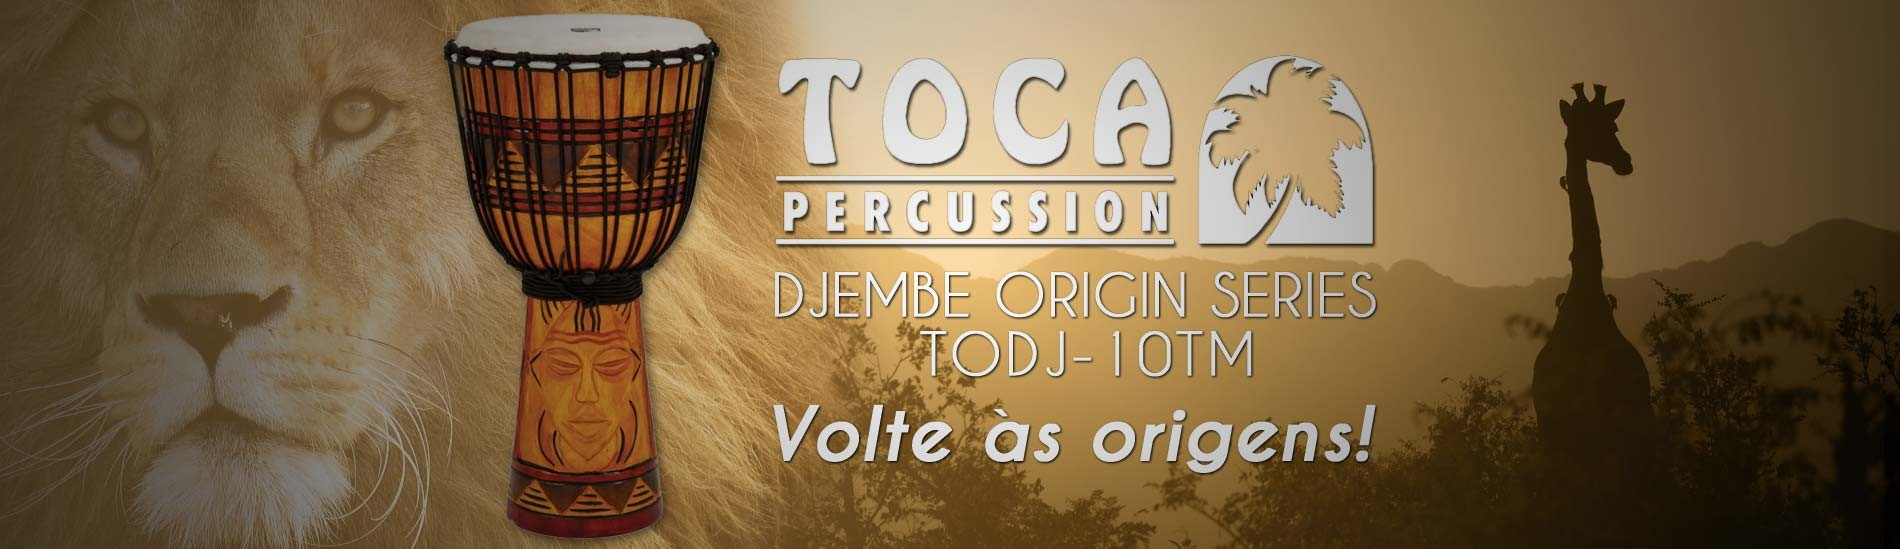 Djembe Toca Percussion TODJ-10TM Origin Series